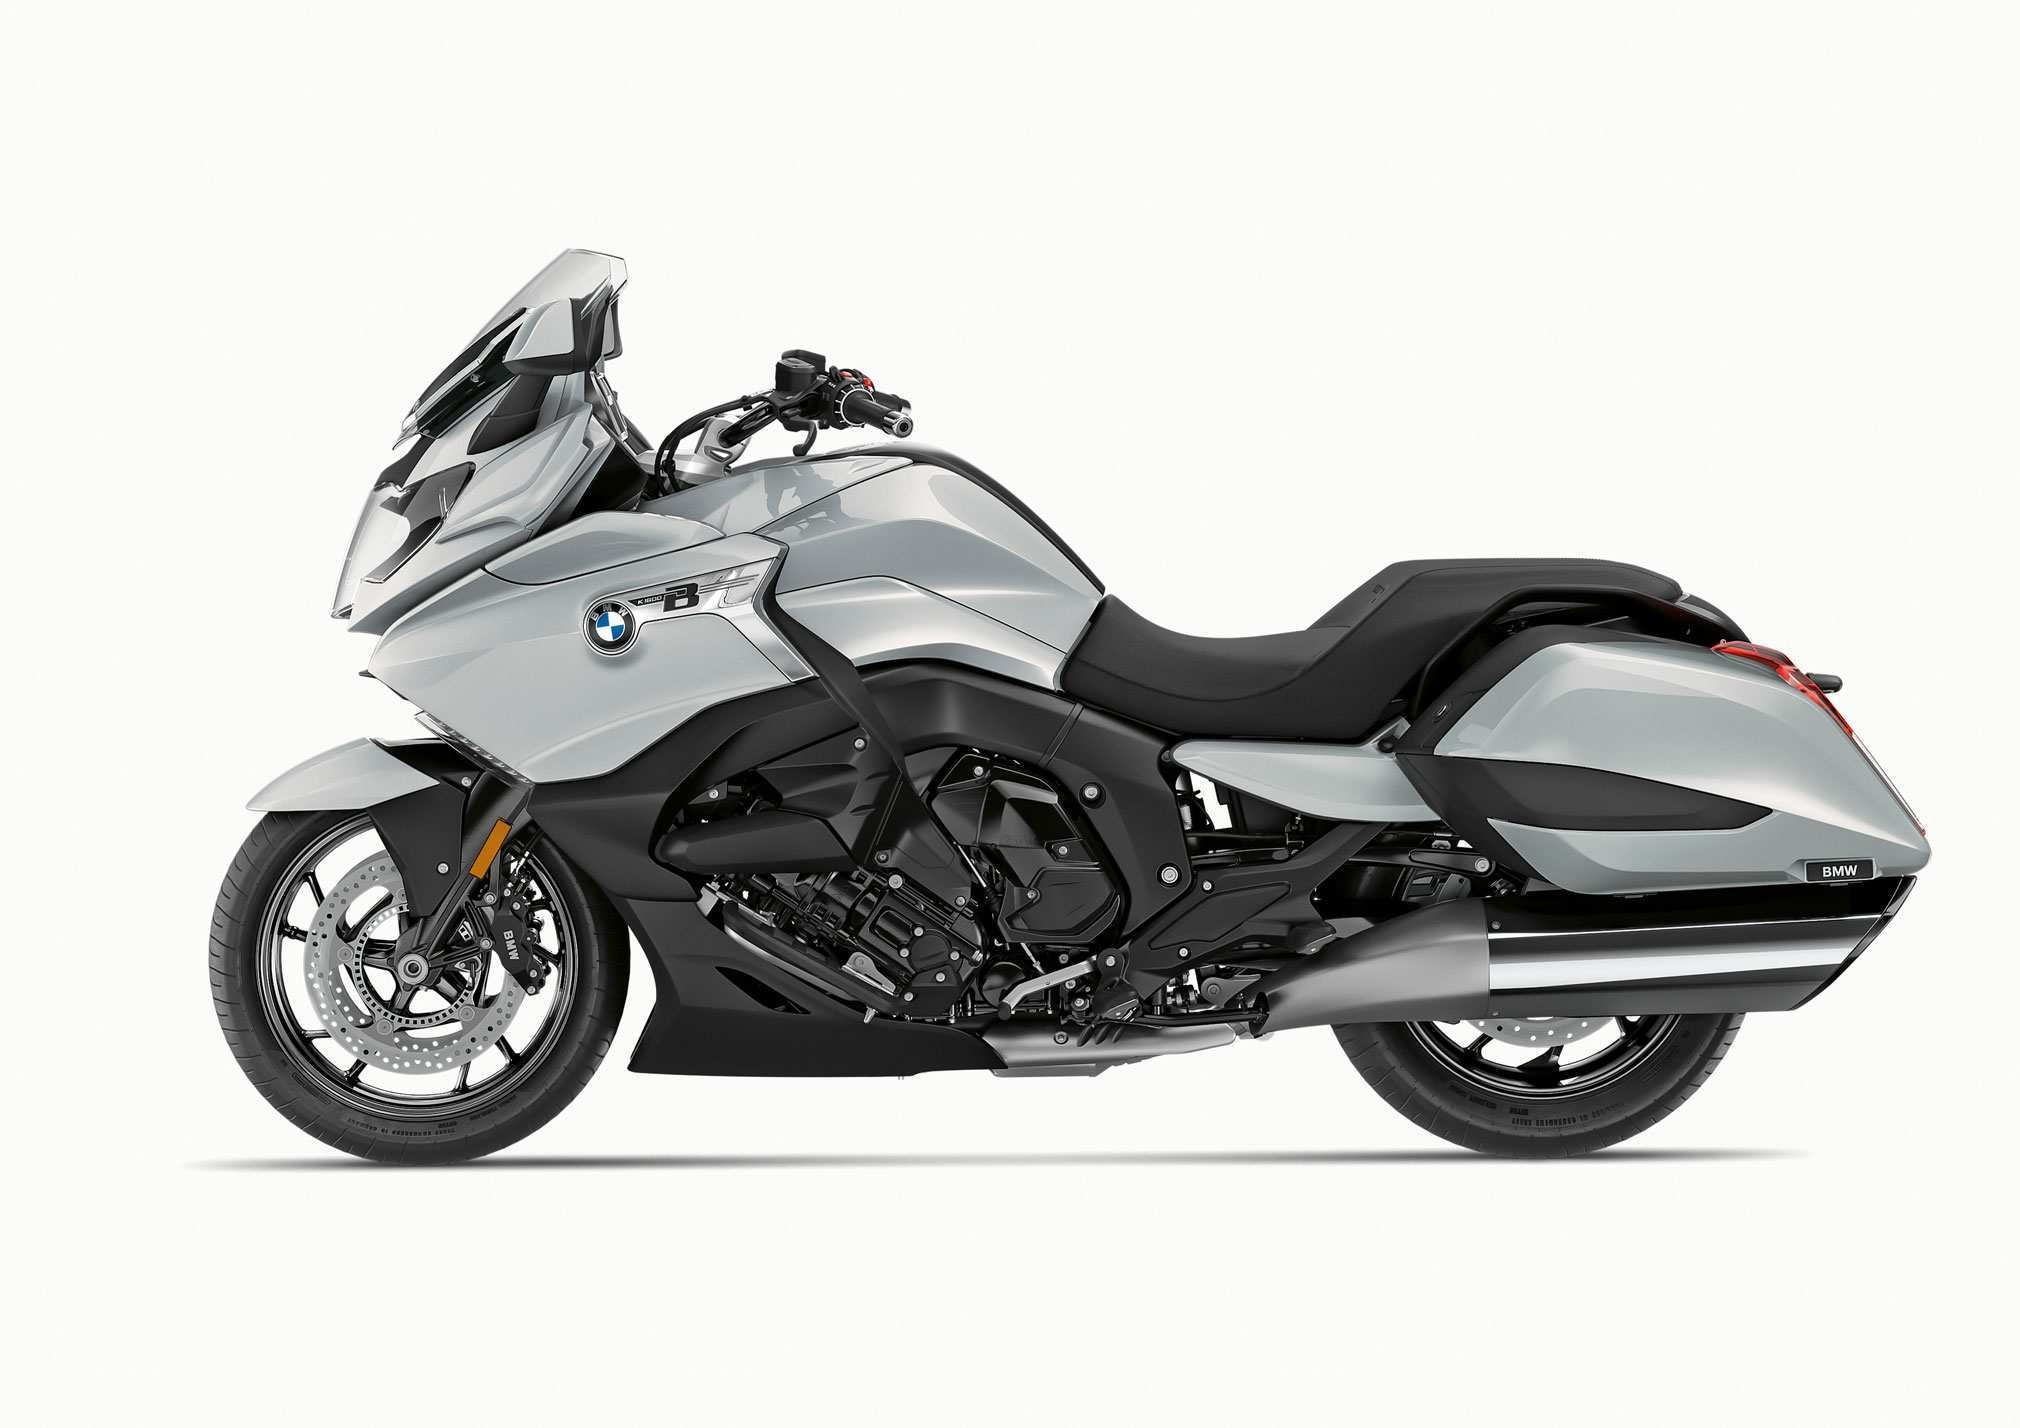 20 The BMW K1600B 2020 Images for BMW K1600B 2020